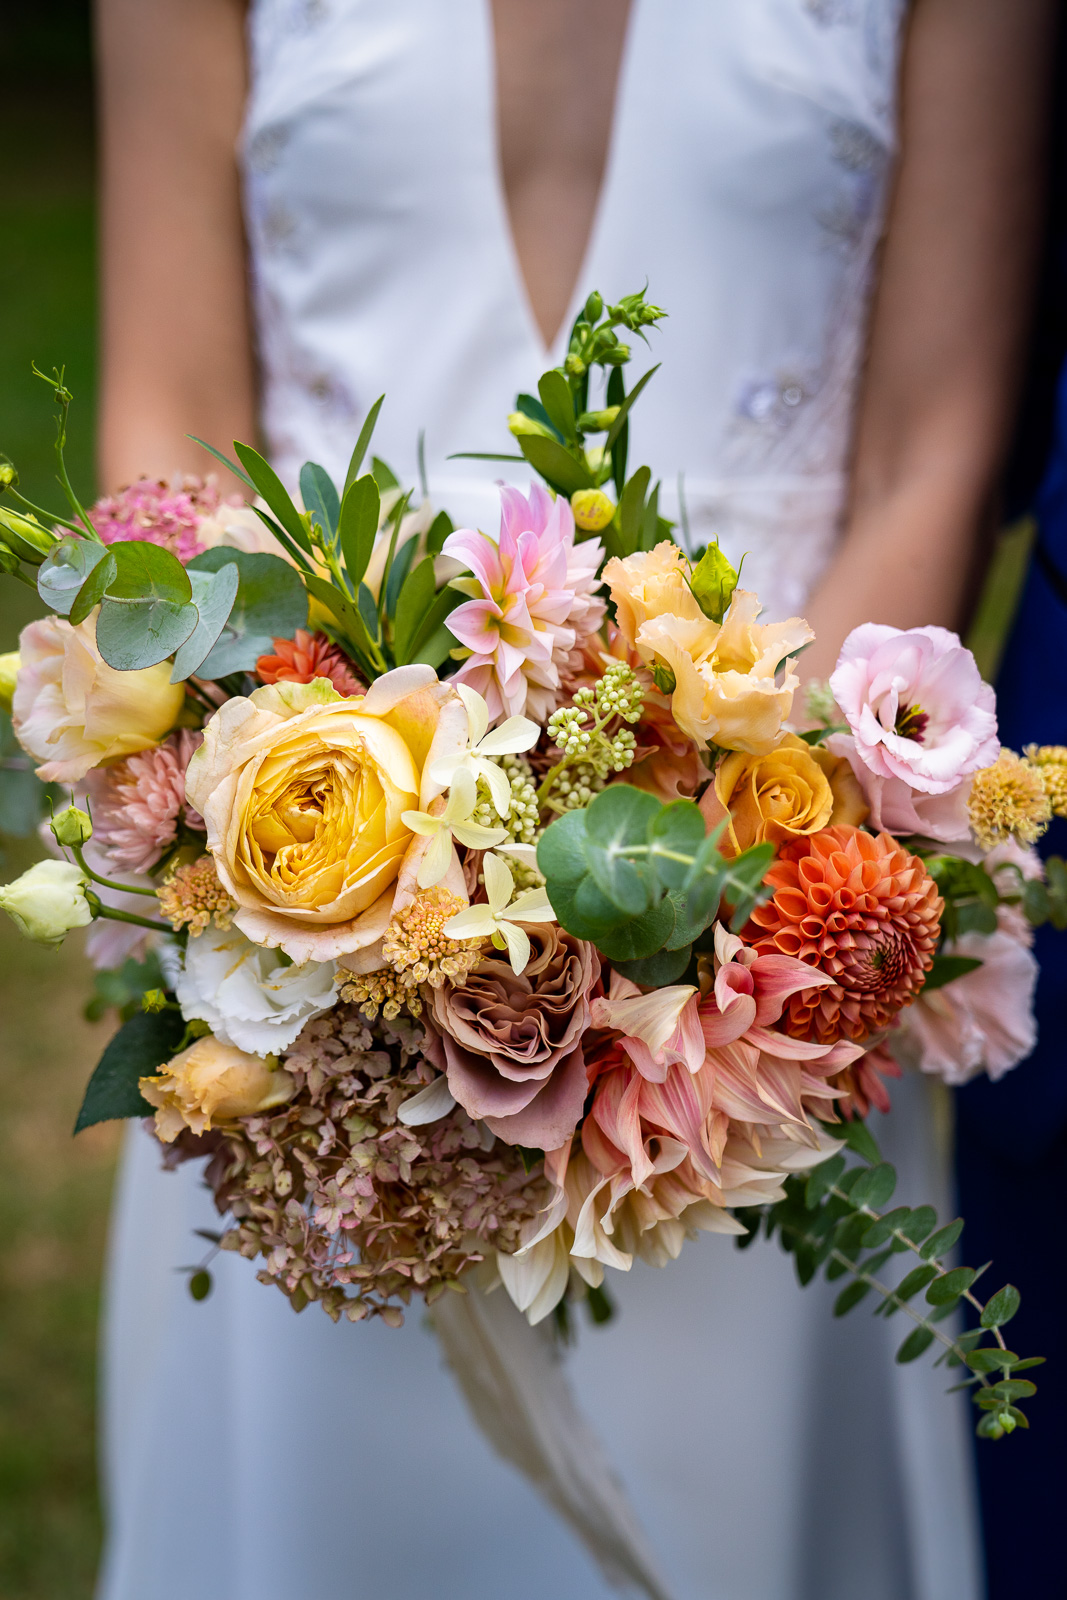 Brides colorful bouquet